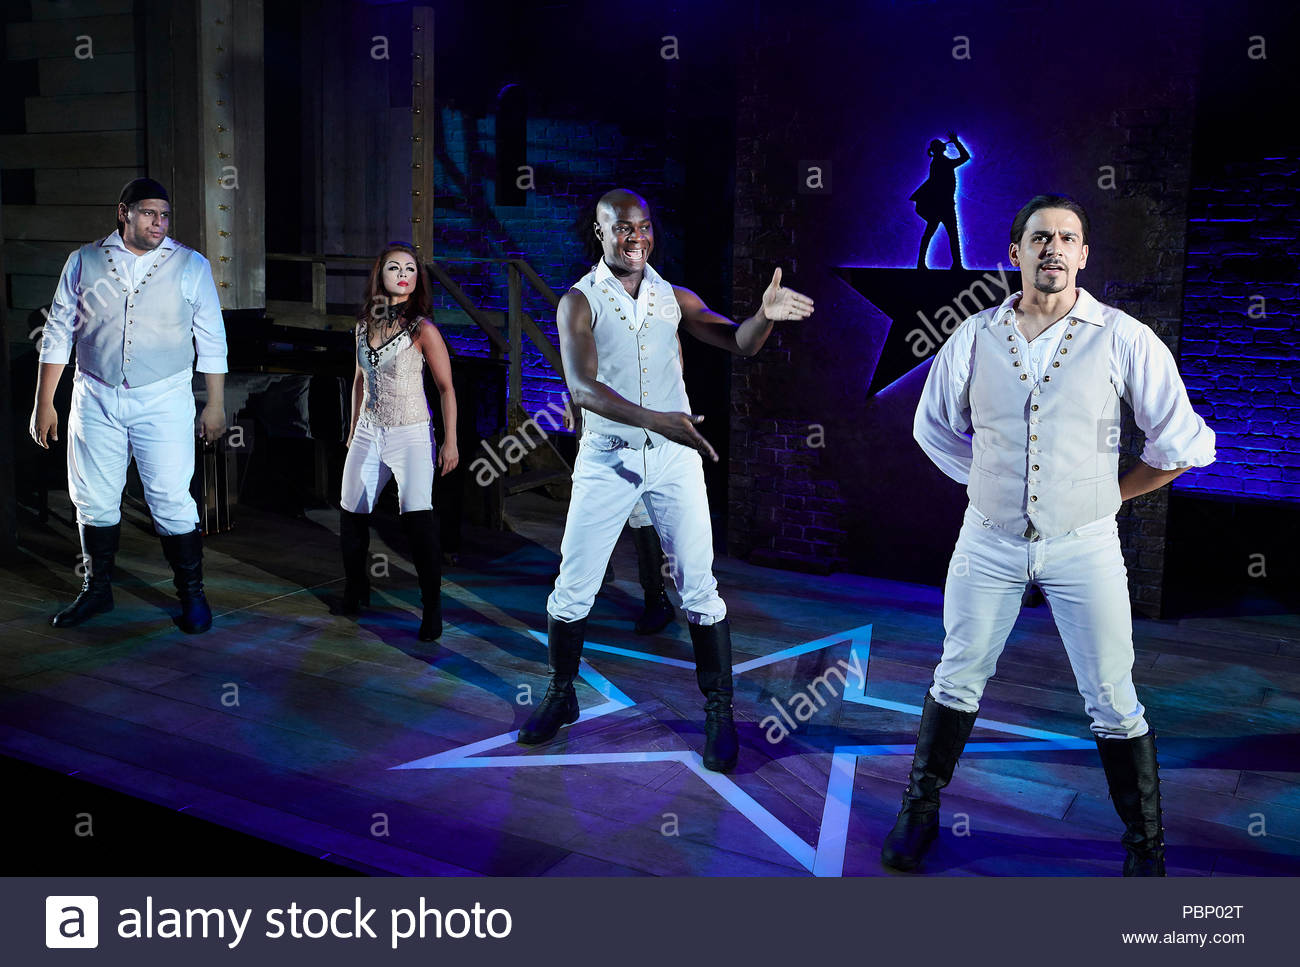 Spamilton. An American Parody.Written and directed by Gerard Alessandrini, choregraphed by Gerry McIntyre. With Mark Akinfolarin, Julie Yammanee, Eddie Elliott, Liam Tamne. Opens at The Mernier Chocolate Factory Theatre on 24/7/18. CREDIT Geraint Lewis EDITORIAL USE ONLY - Stock Image